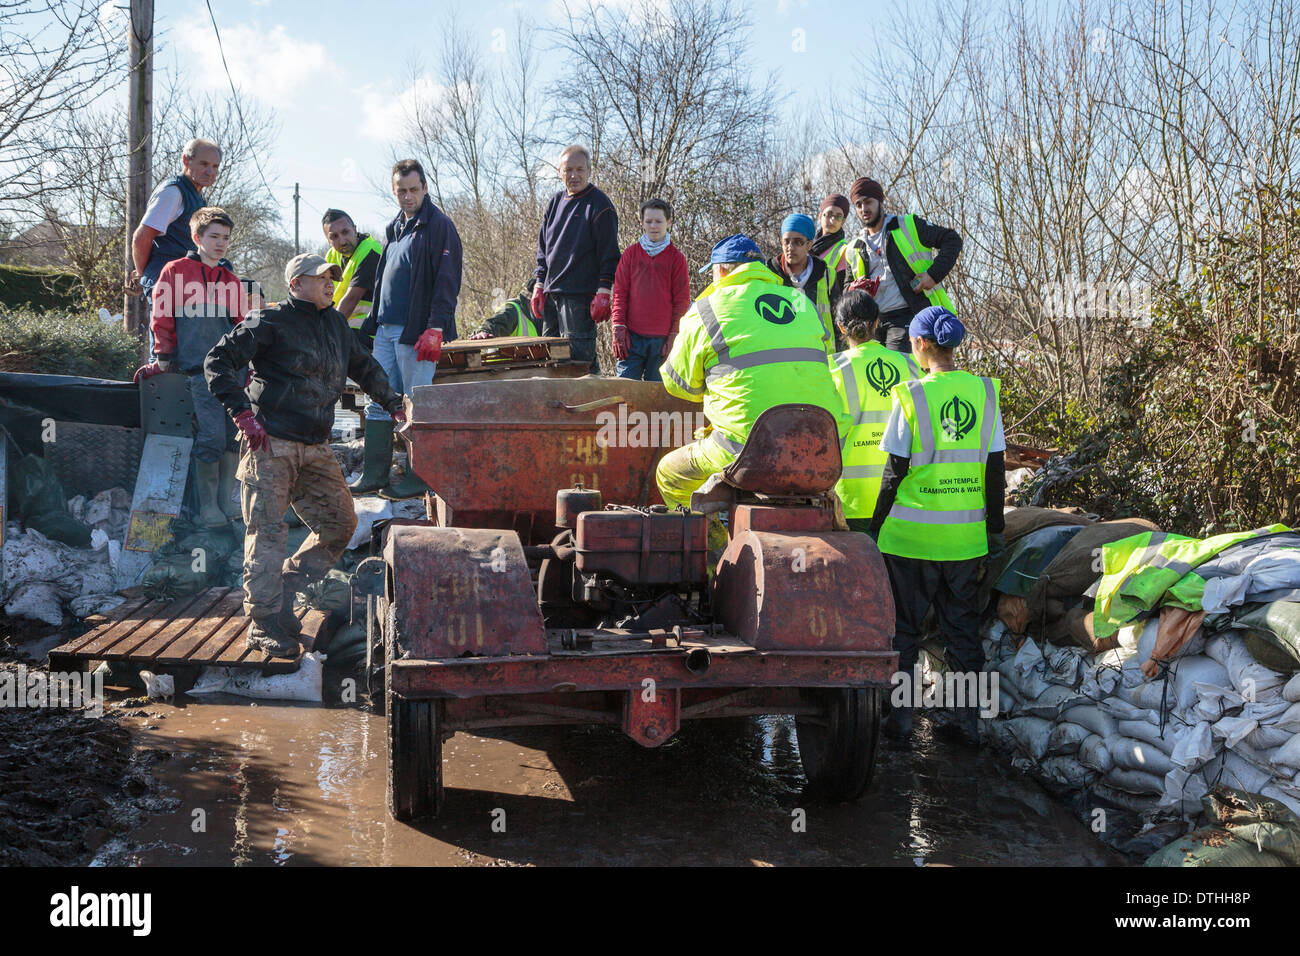 Volunteers from Khalsa Aid help distribute supplies in the flooded village of Moorland on the Somerset Levels. - Stock Image